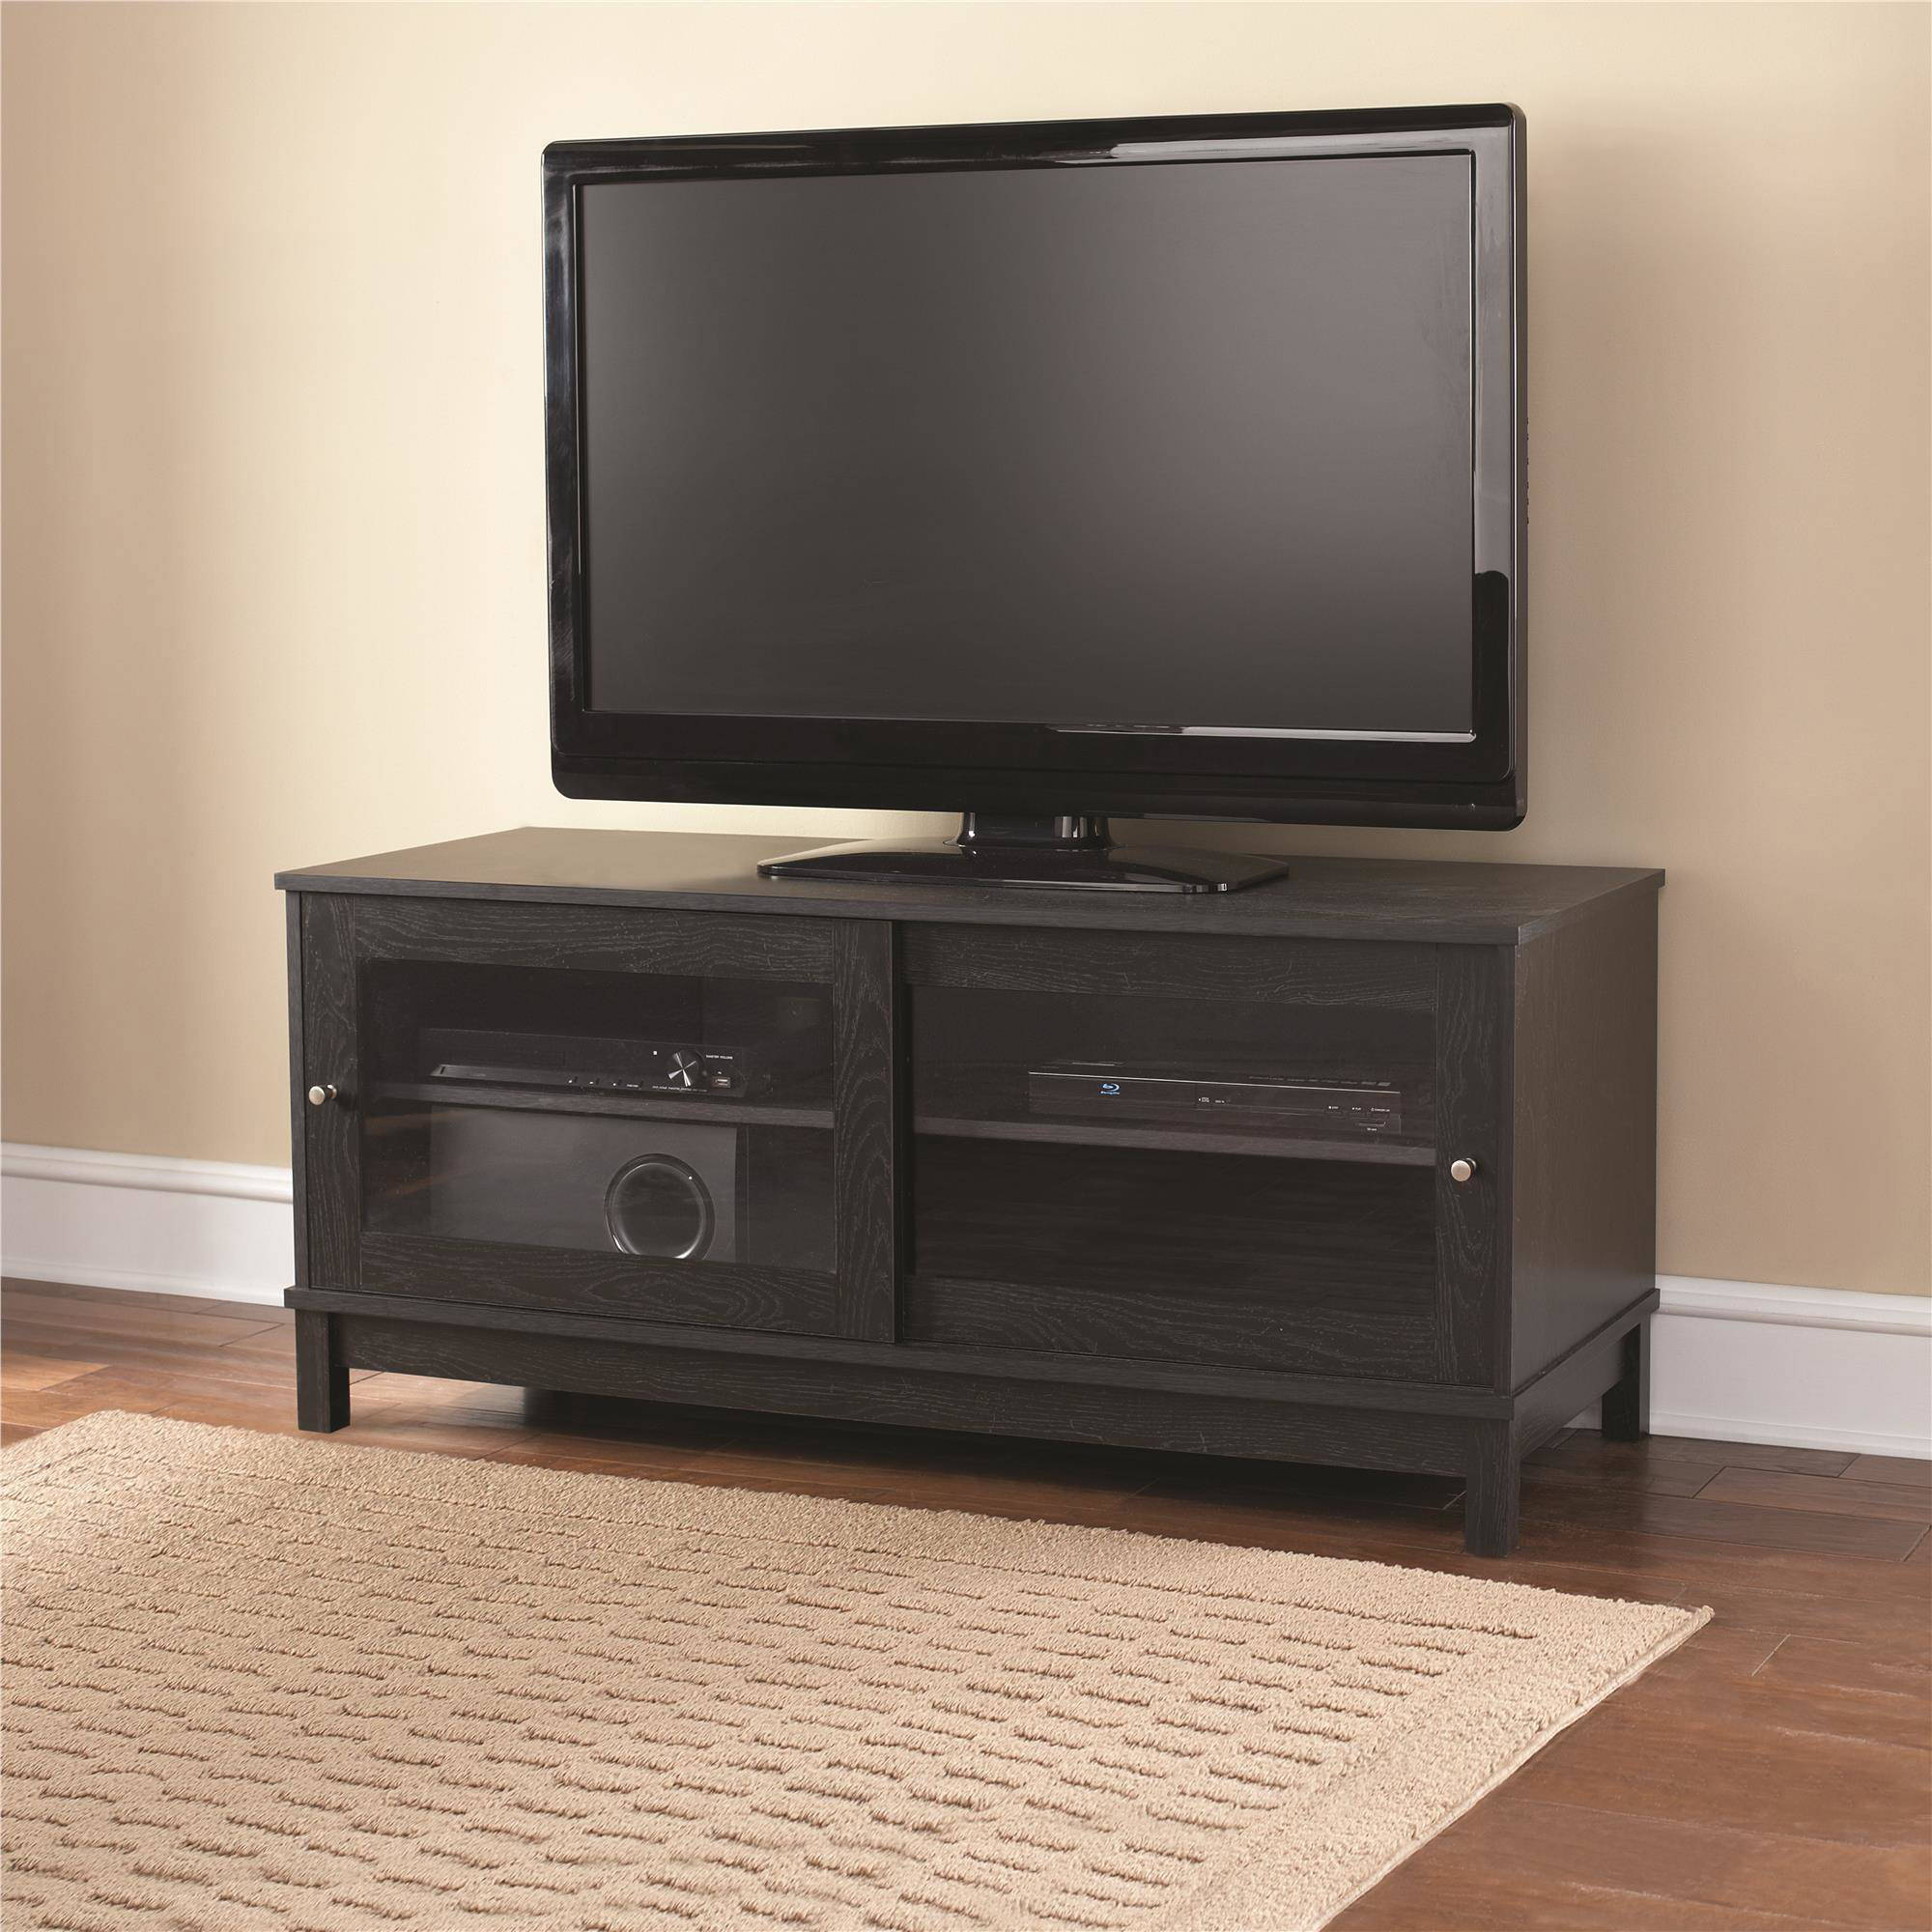 "Mainstays 55"" TV Stand with Sliding Glass Doors, Multiple Colors by Ameriwood Industries Inc"